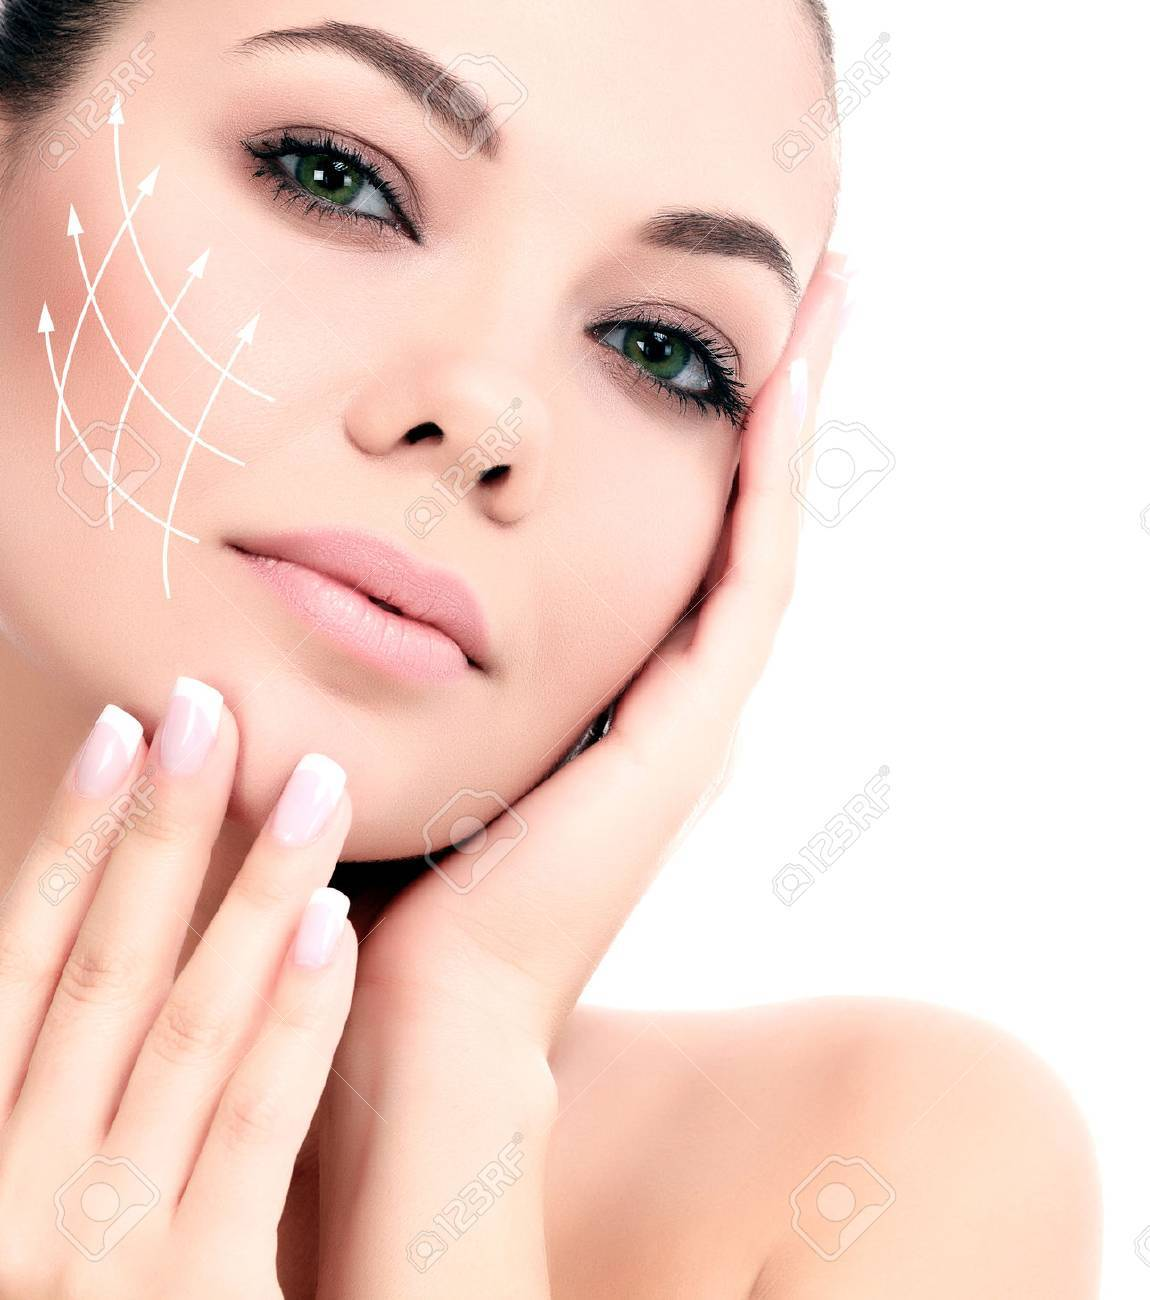 Young female with clean fresh skin, white background - 26551452